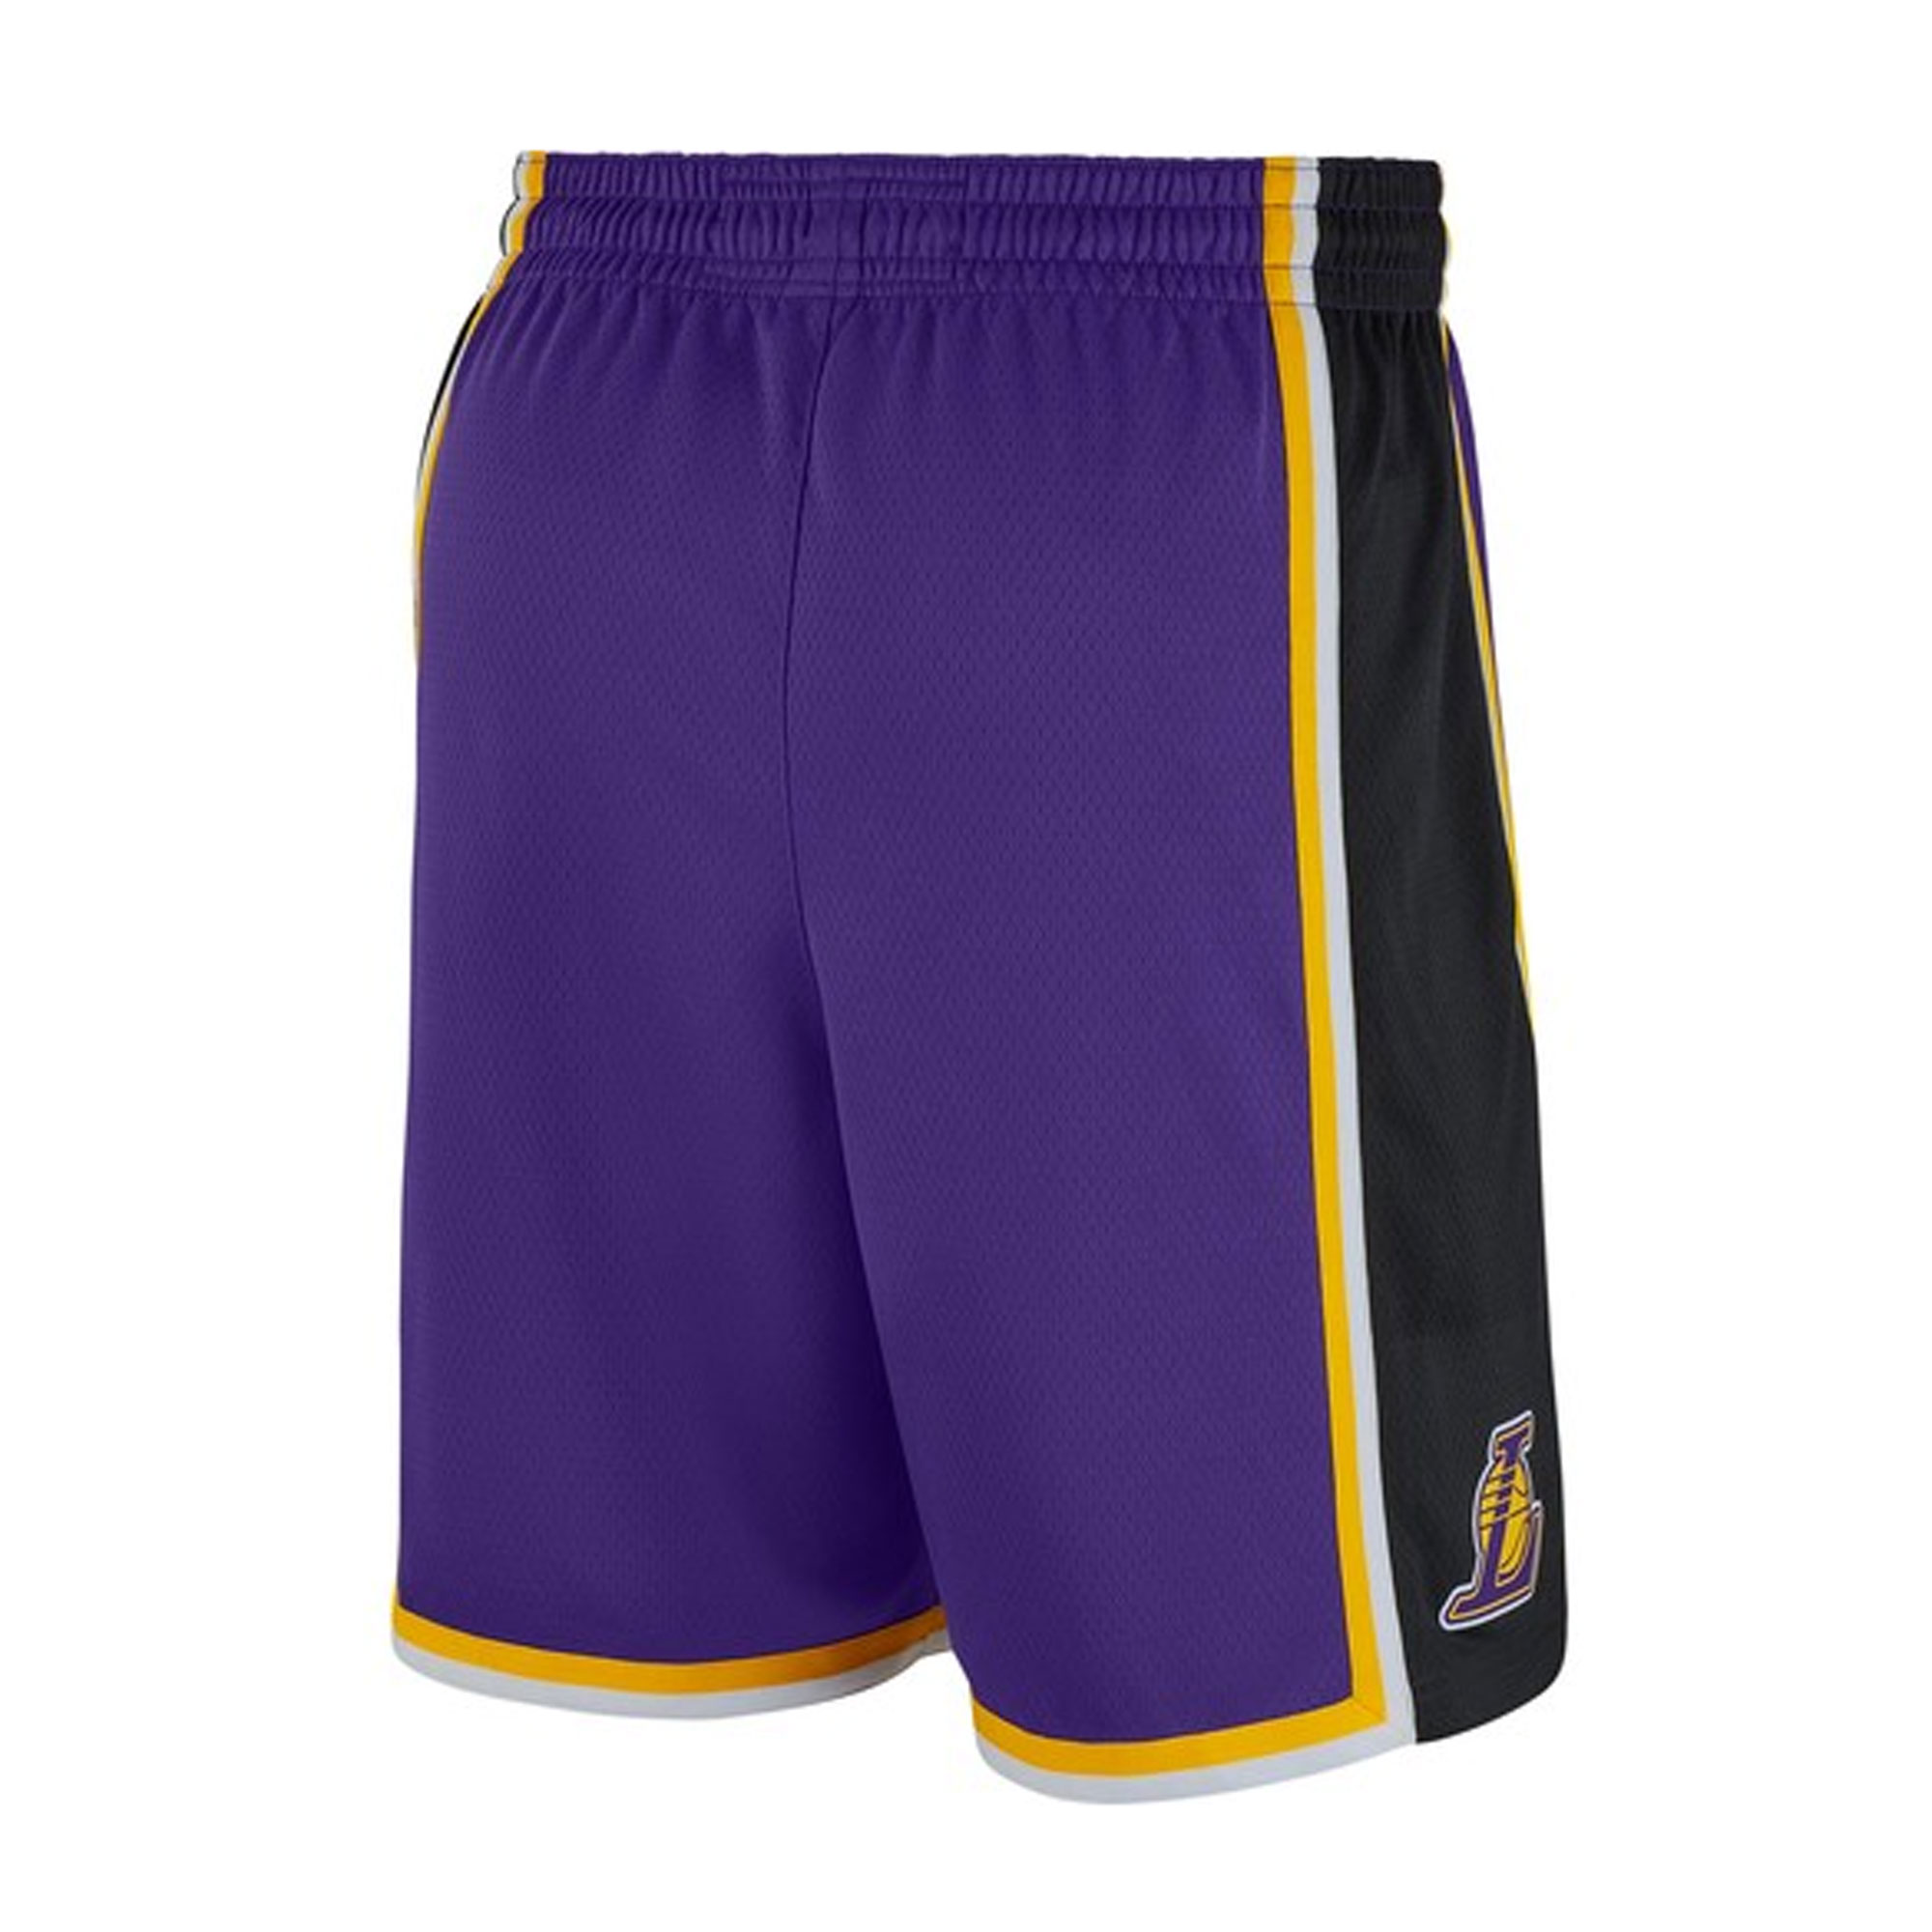 L.A. Lakers Short (SRT-PRP-LAKERS02)